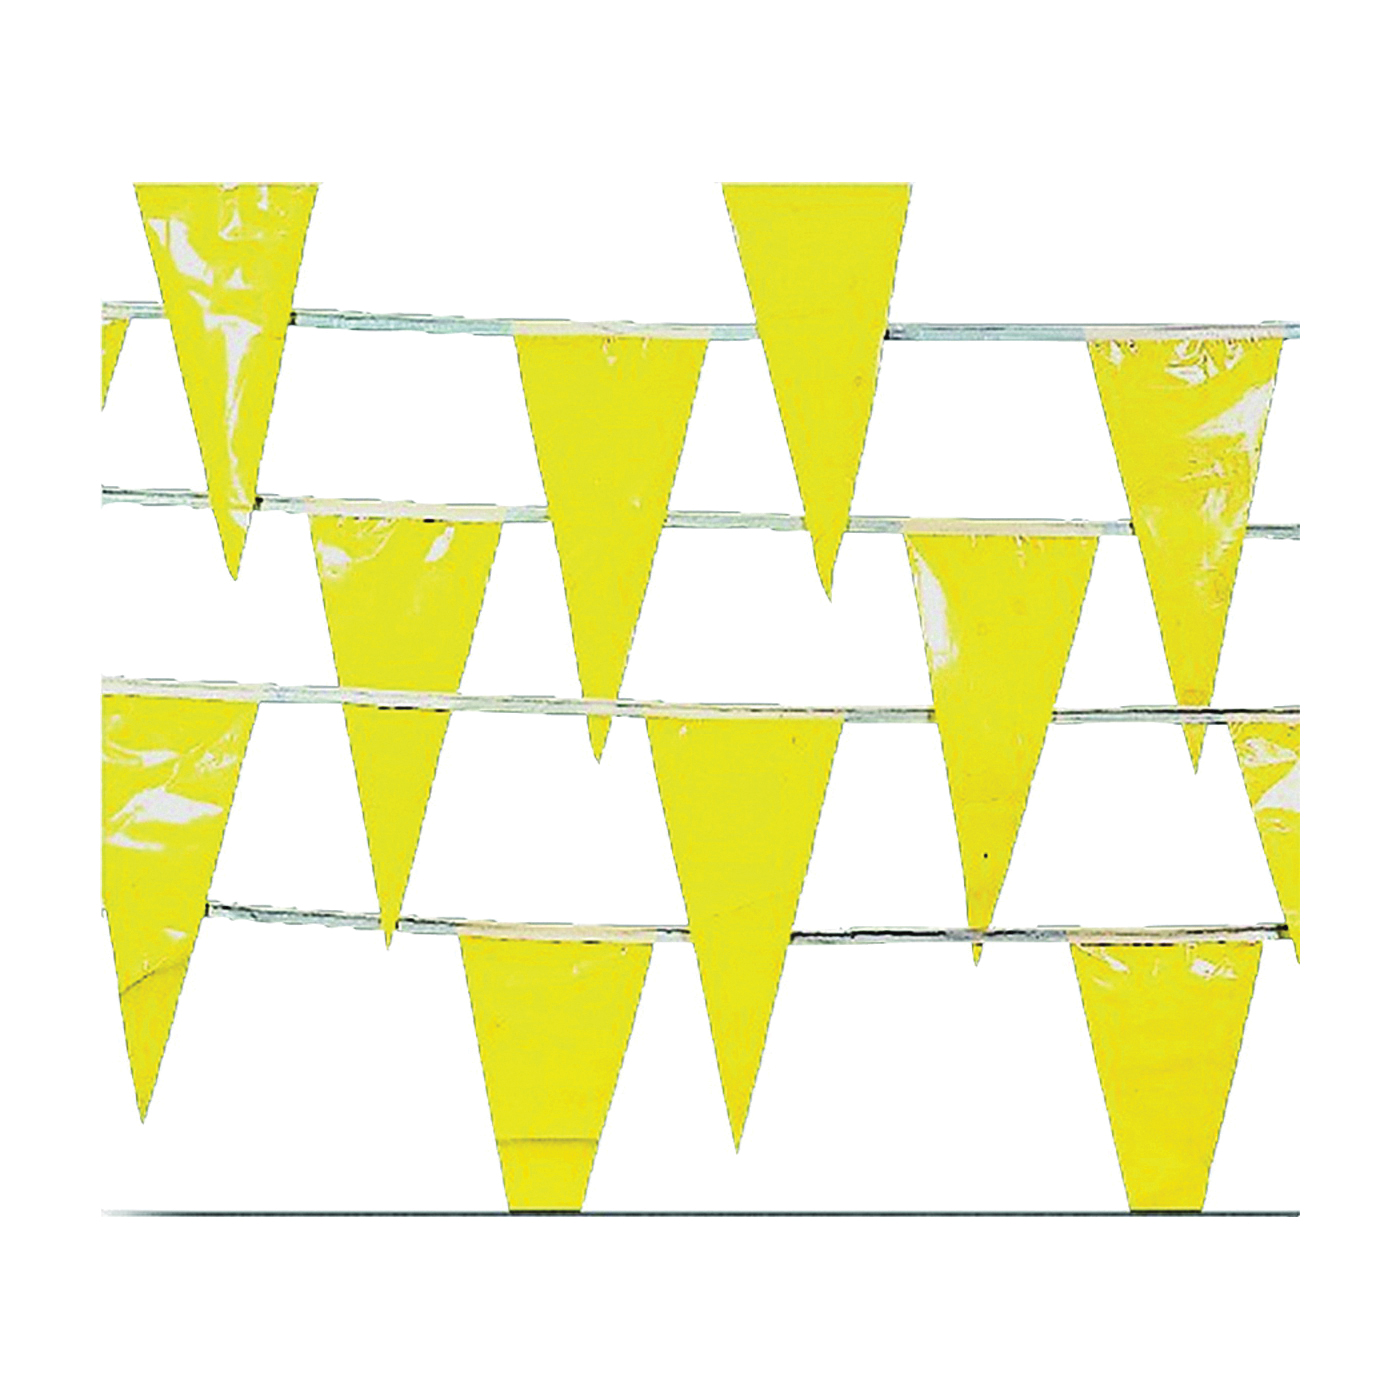 Picture of MUTUAL INDUSTRIES 15903-41 Perimeter Marker, 105 ft L, 12 in W, Yellow, HDPE